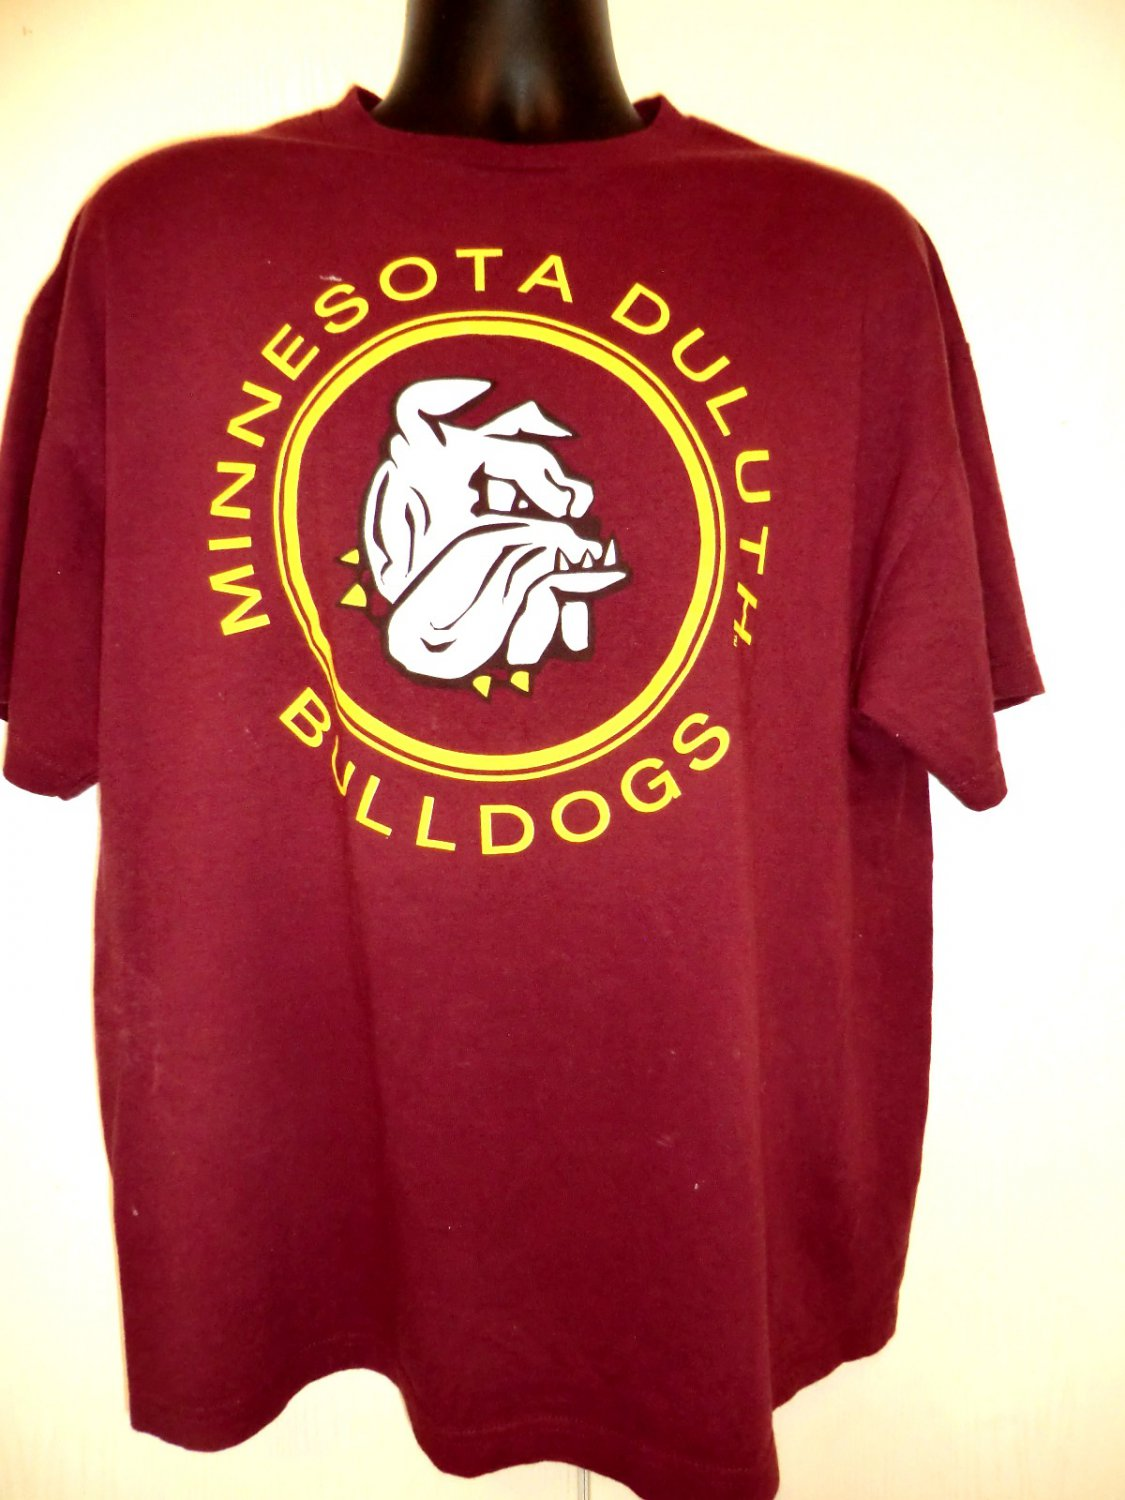 Minnesota duluth bulldogs t shirt size xl for Duluth t shirt commercial